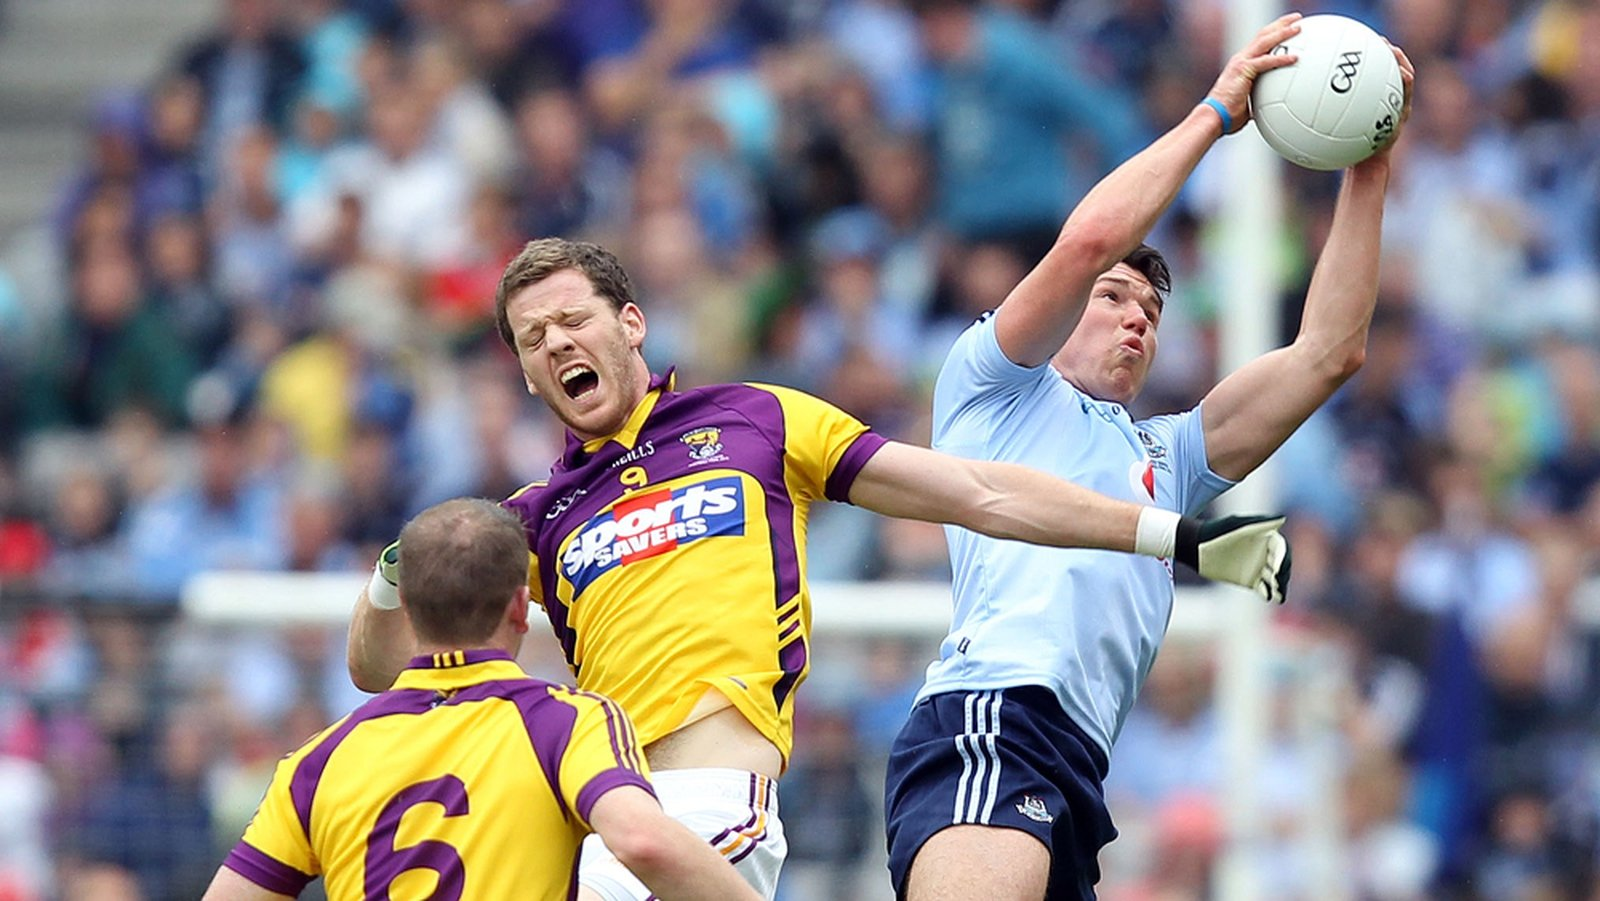 Image - Eamon Fennell in action for Dublin against Wexford